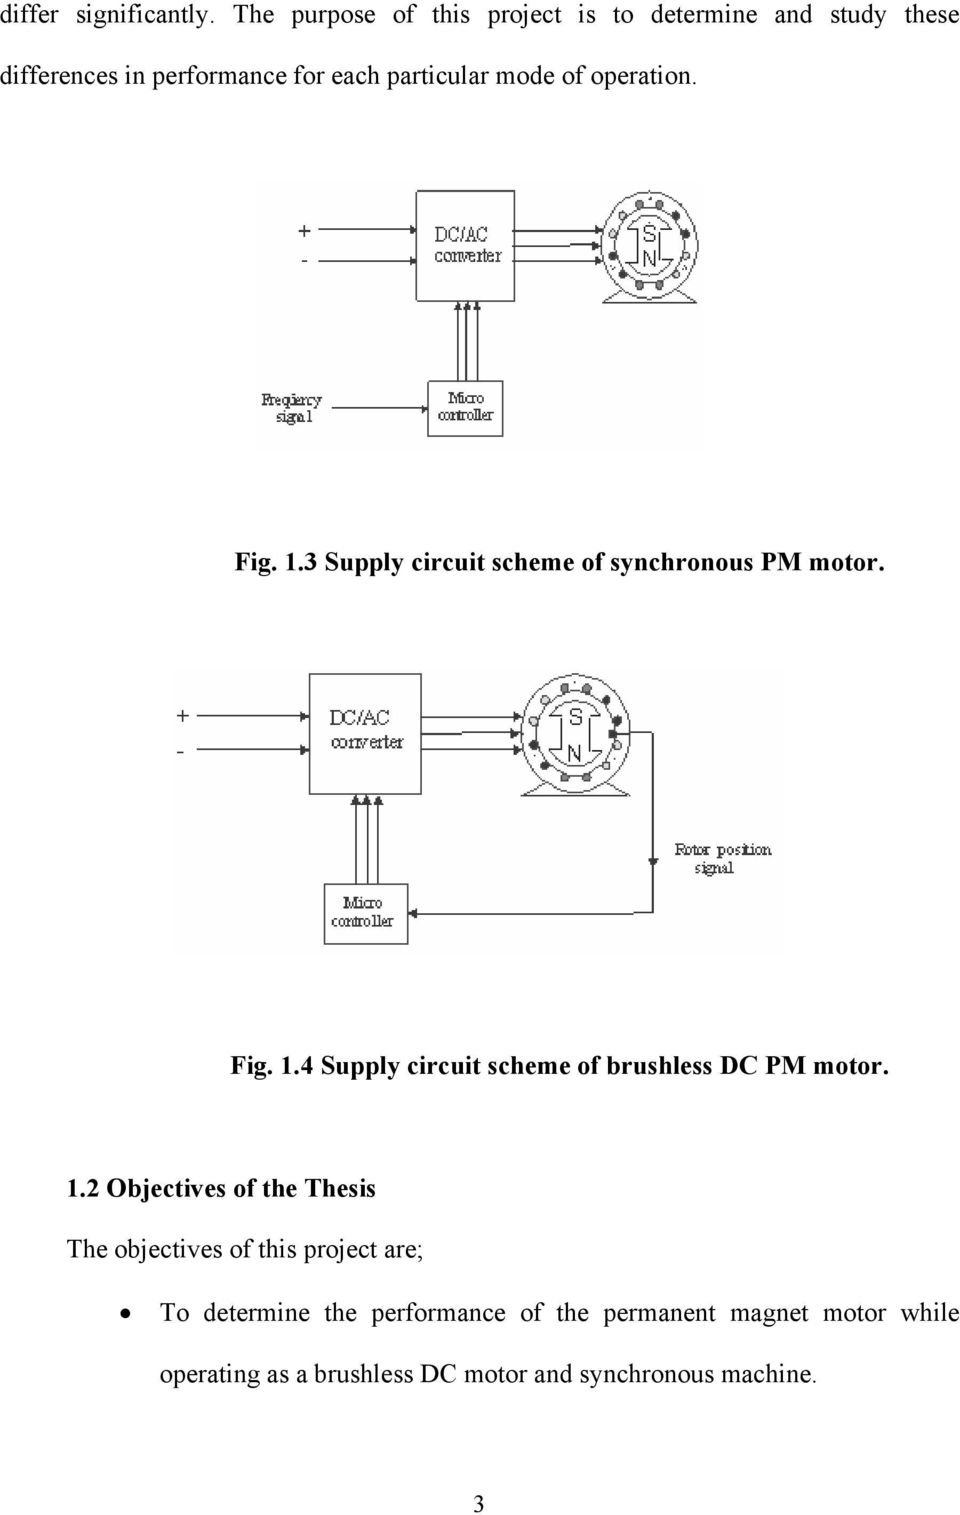 brushless dc motor thesis